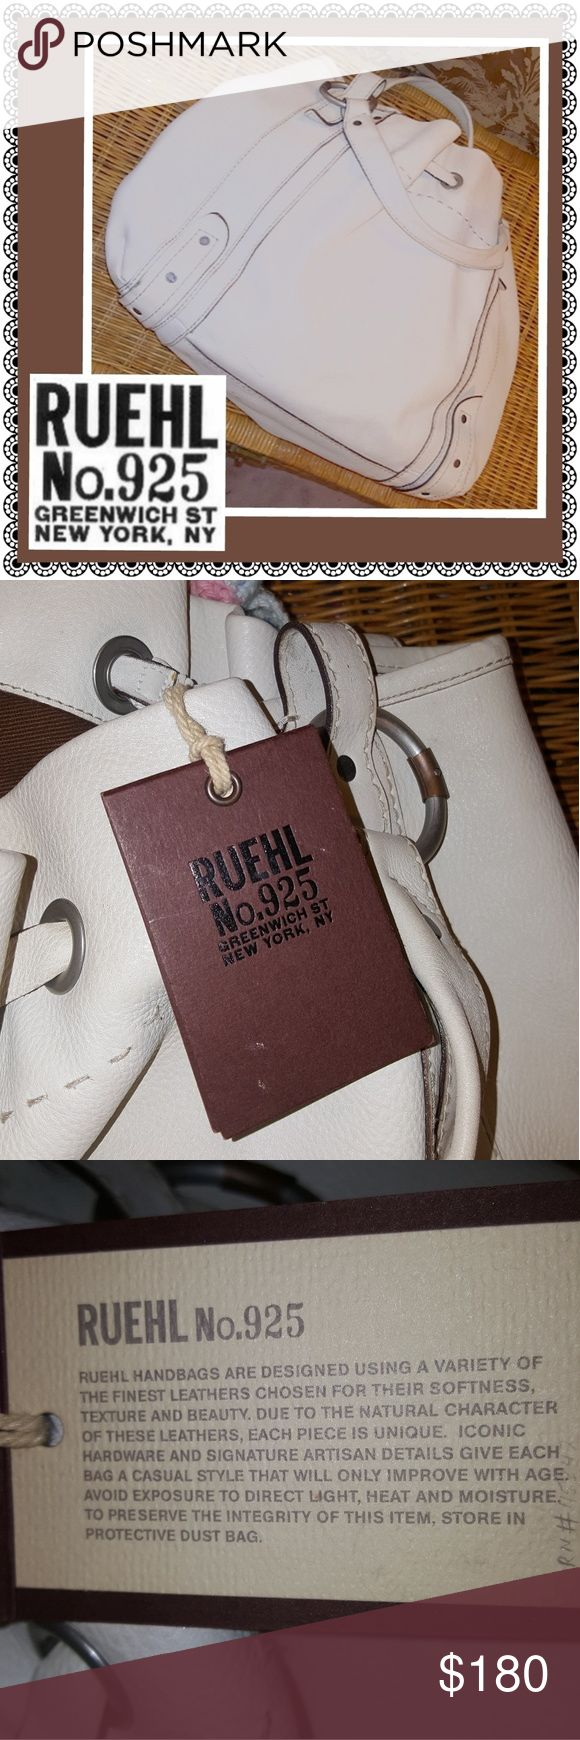 "Ruehl No.925 bag from Abercrombie and Fitch, NWT Off white, beautifully and purposely  distressed, sturdy yet supple leather handbag, excellent craftsmanship, brand new with tags by Ruehl No.925 from Abercrombie and Fitch. (Any ""imperfections"" as shown in the pics are part of the design, not signs of wear.) Ruehl No.925 Bags"